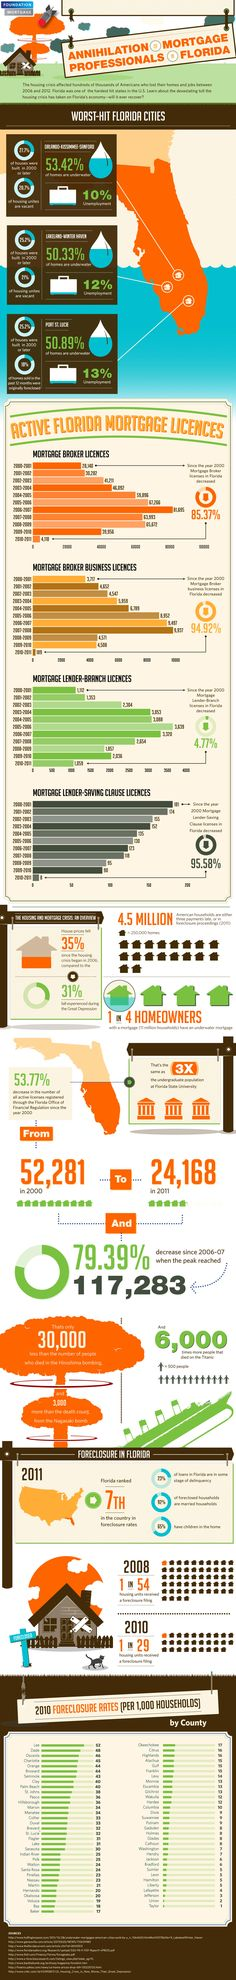 The Florida housing market rode along on a once-in-a-century bubble from early 2000 - 2006. Towards the end of '06 & beginning of '07 there were upwards of 90,000 licensed mortgage professionals in the state of Florida (with many more people, unlicensed, working for mortgage related entities). When the bubble ultimately burst, it resulted in unprecedented carnage in the mortgage industry, a decline in housing values, and Depression Era levels of employment and economic stagnation in Florida.